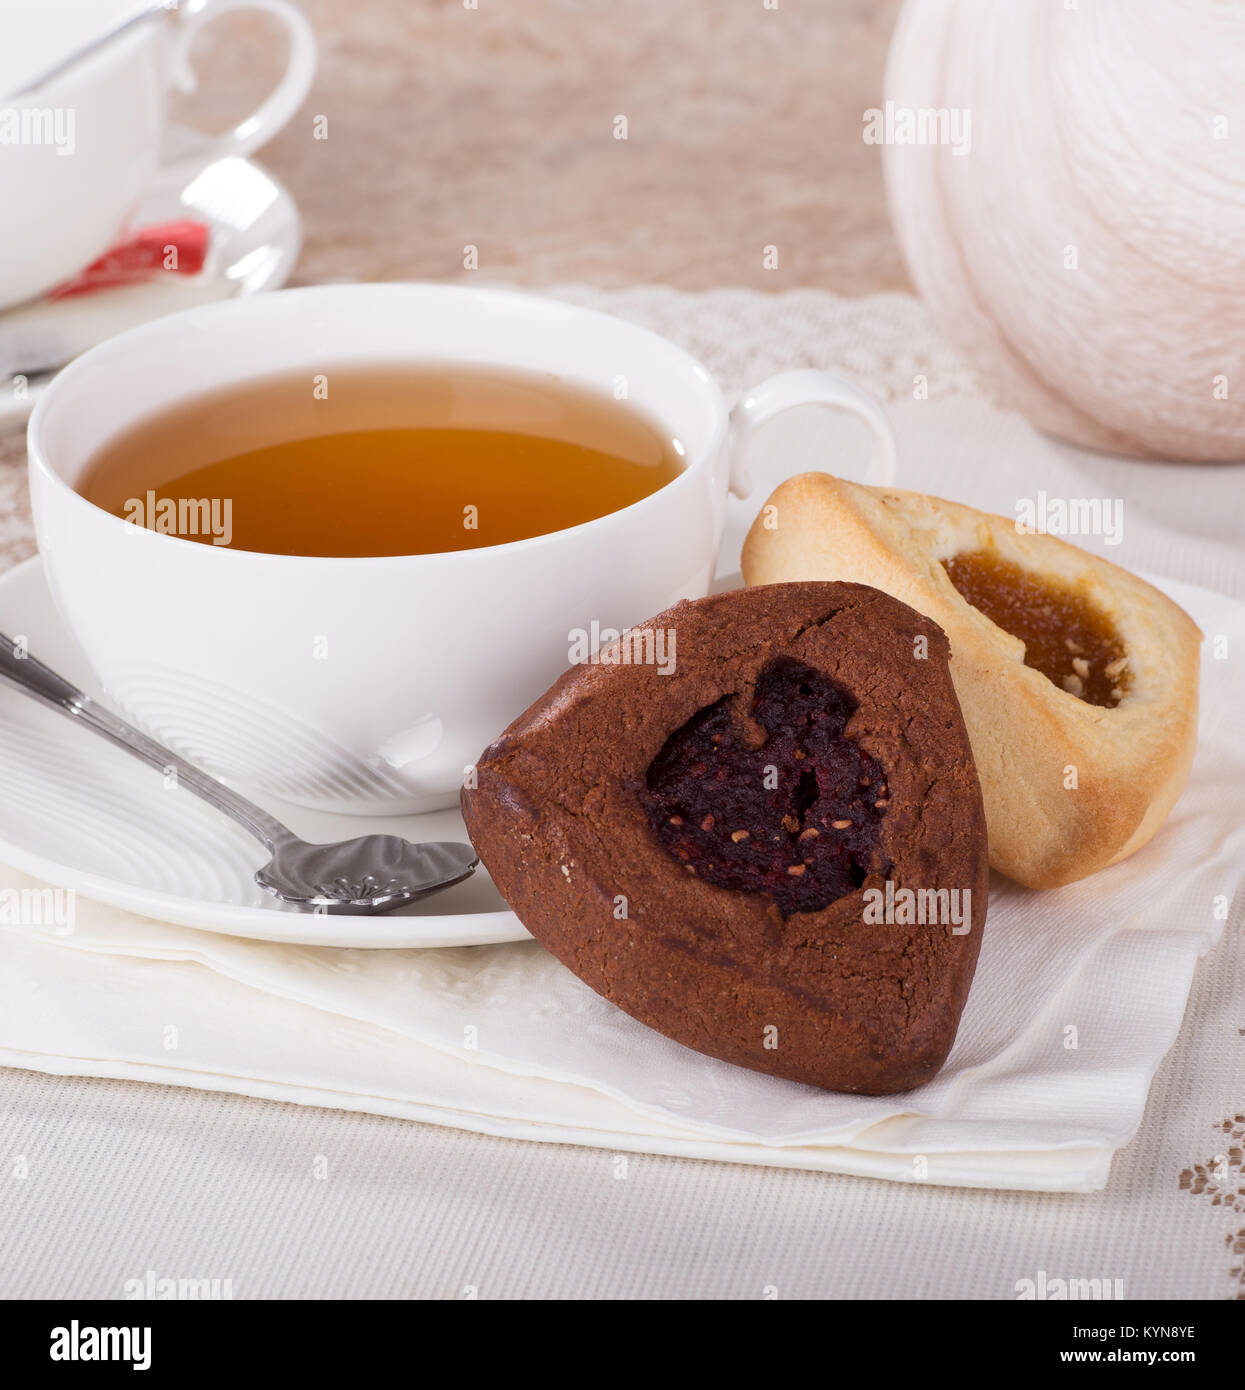 Raspberry and apricot filled hamantash cookies and cup of tea - Stock Image